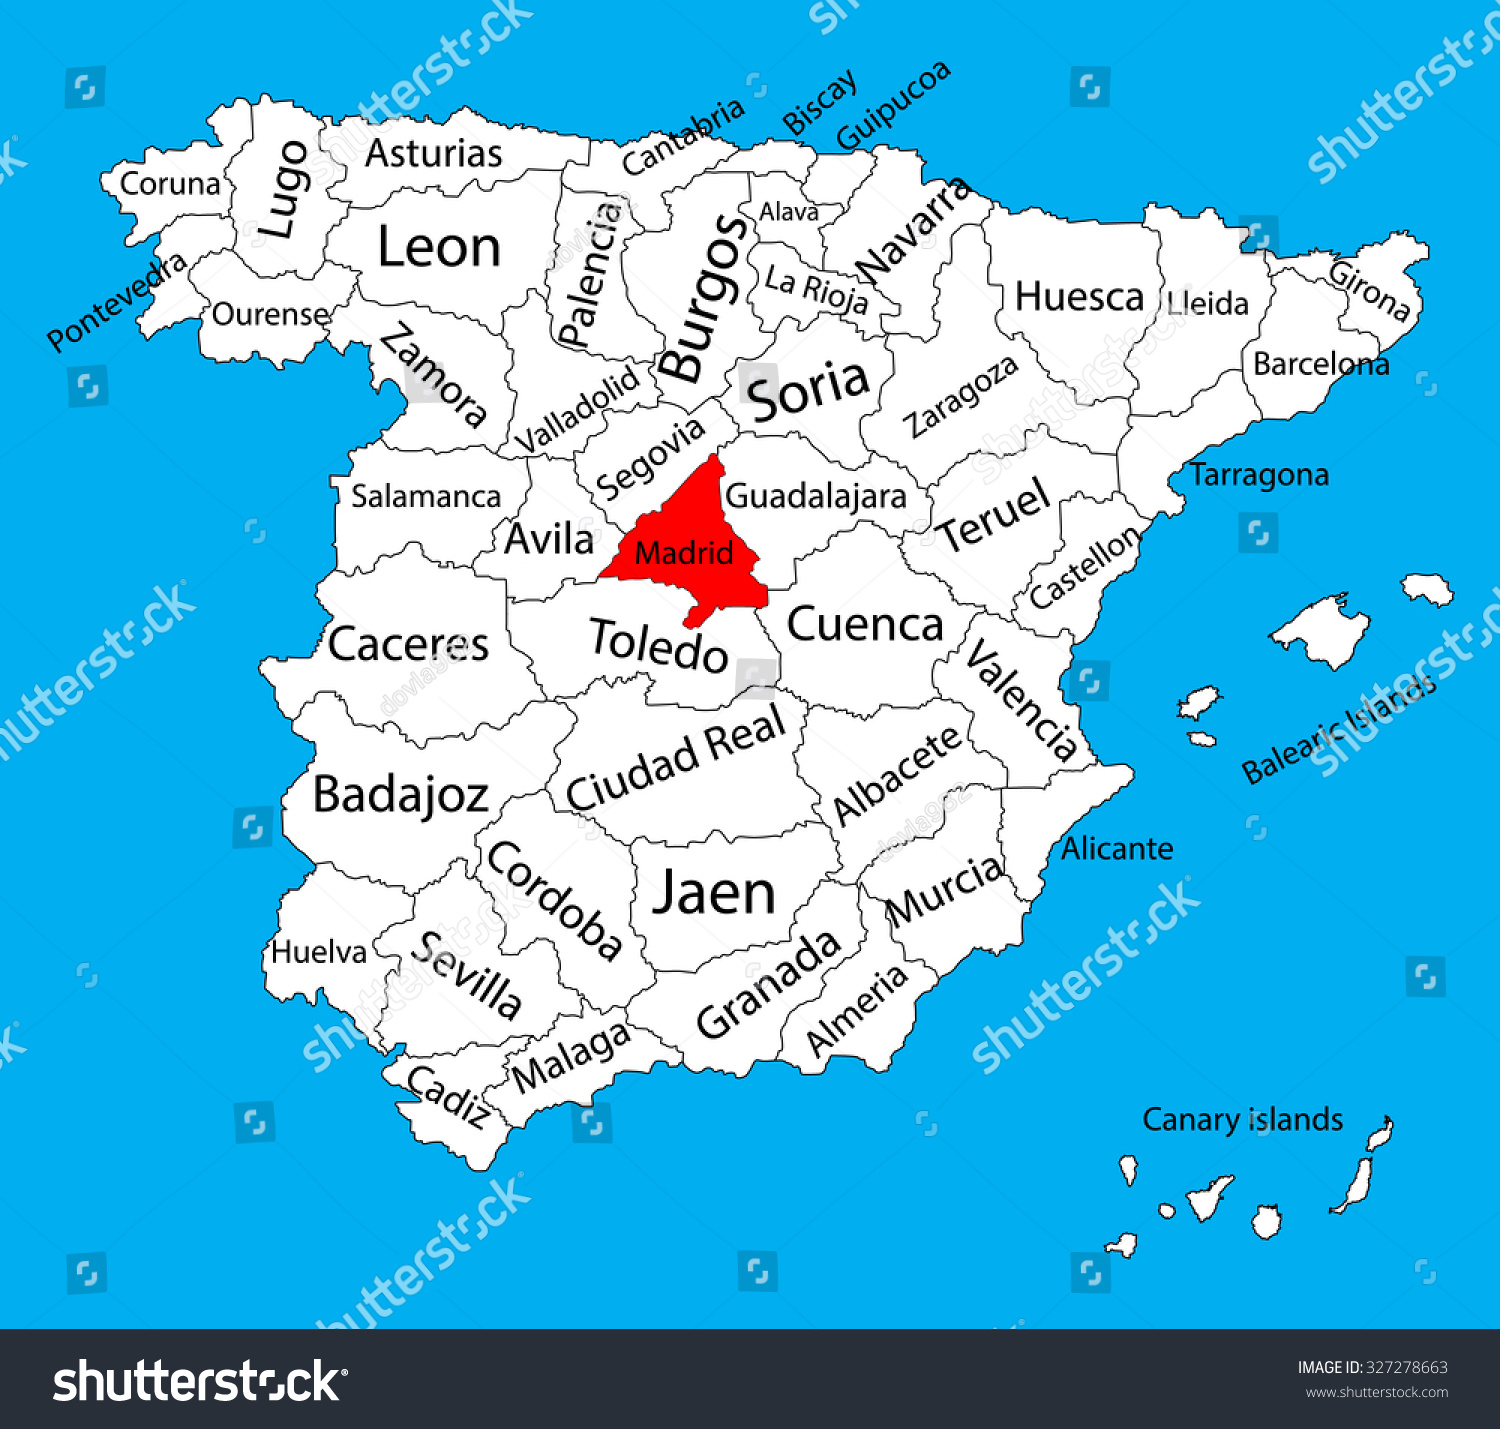 madrid map spain province vector map stock vector   - madrid map spain province vector map stock vector   shutterstock